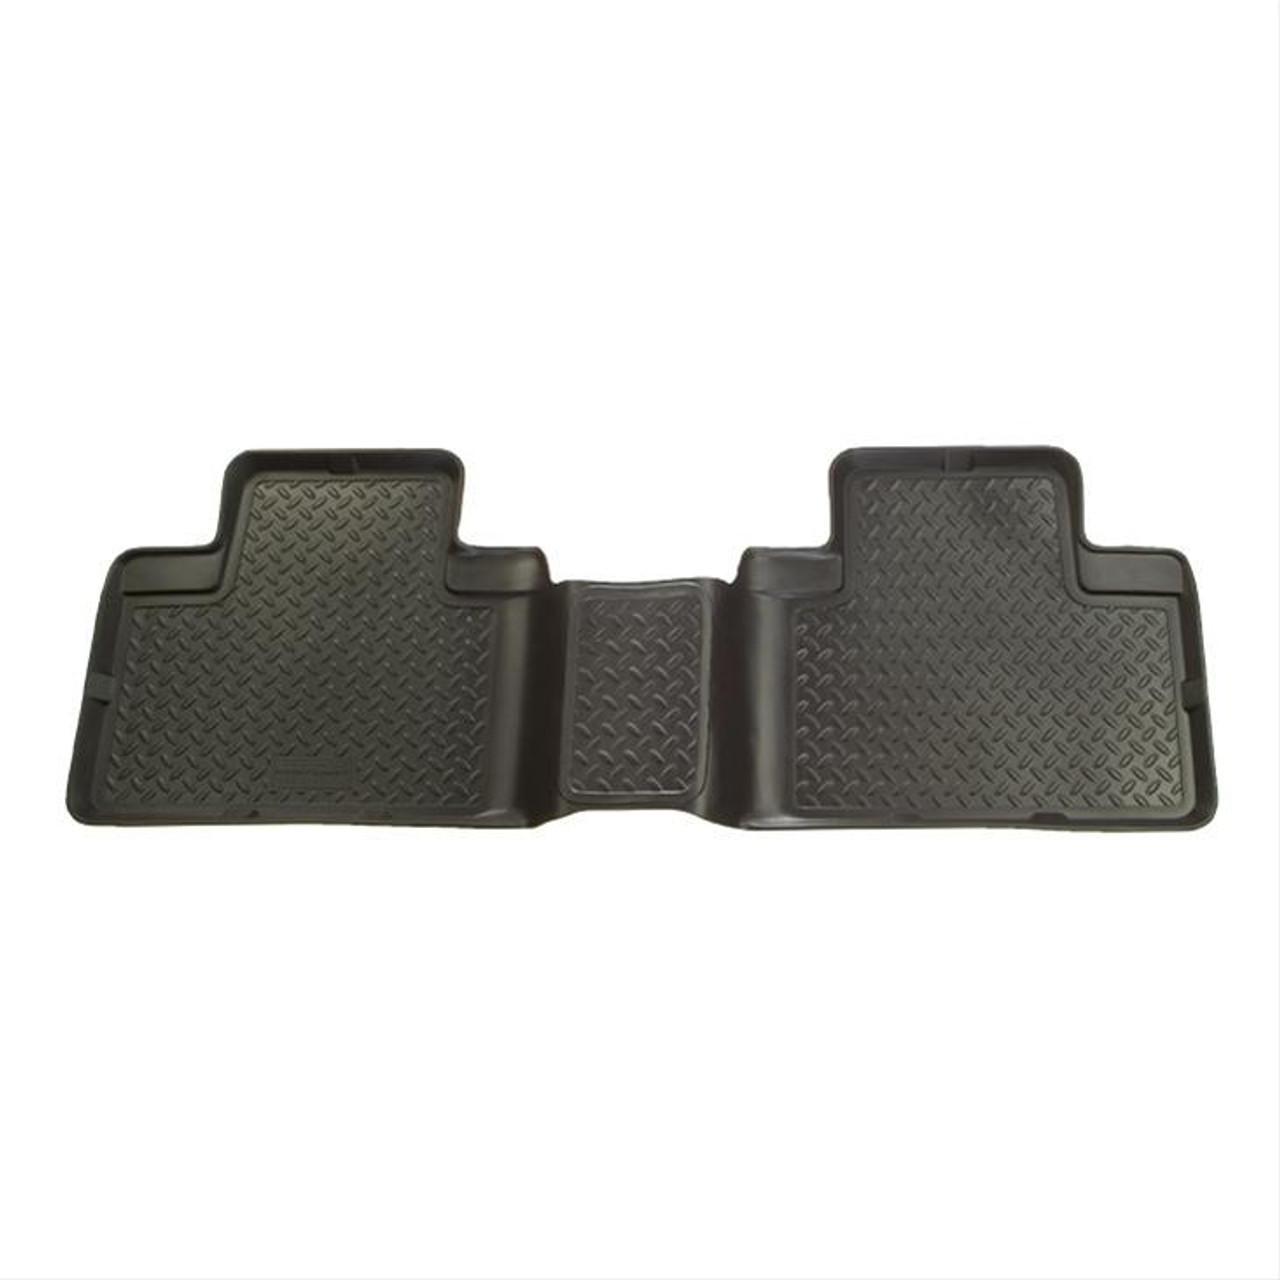 04-15 TITAN CREW CAB 2ND SEAT 2PC CLASSIC FLOOR LINERS BLK